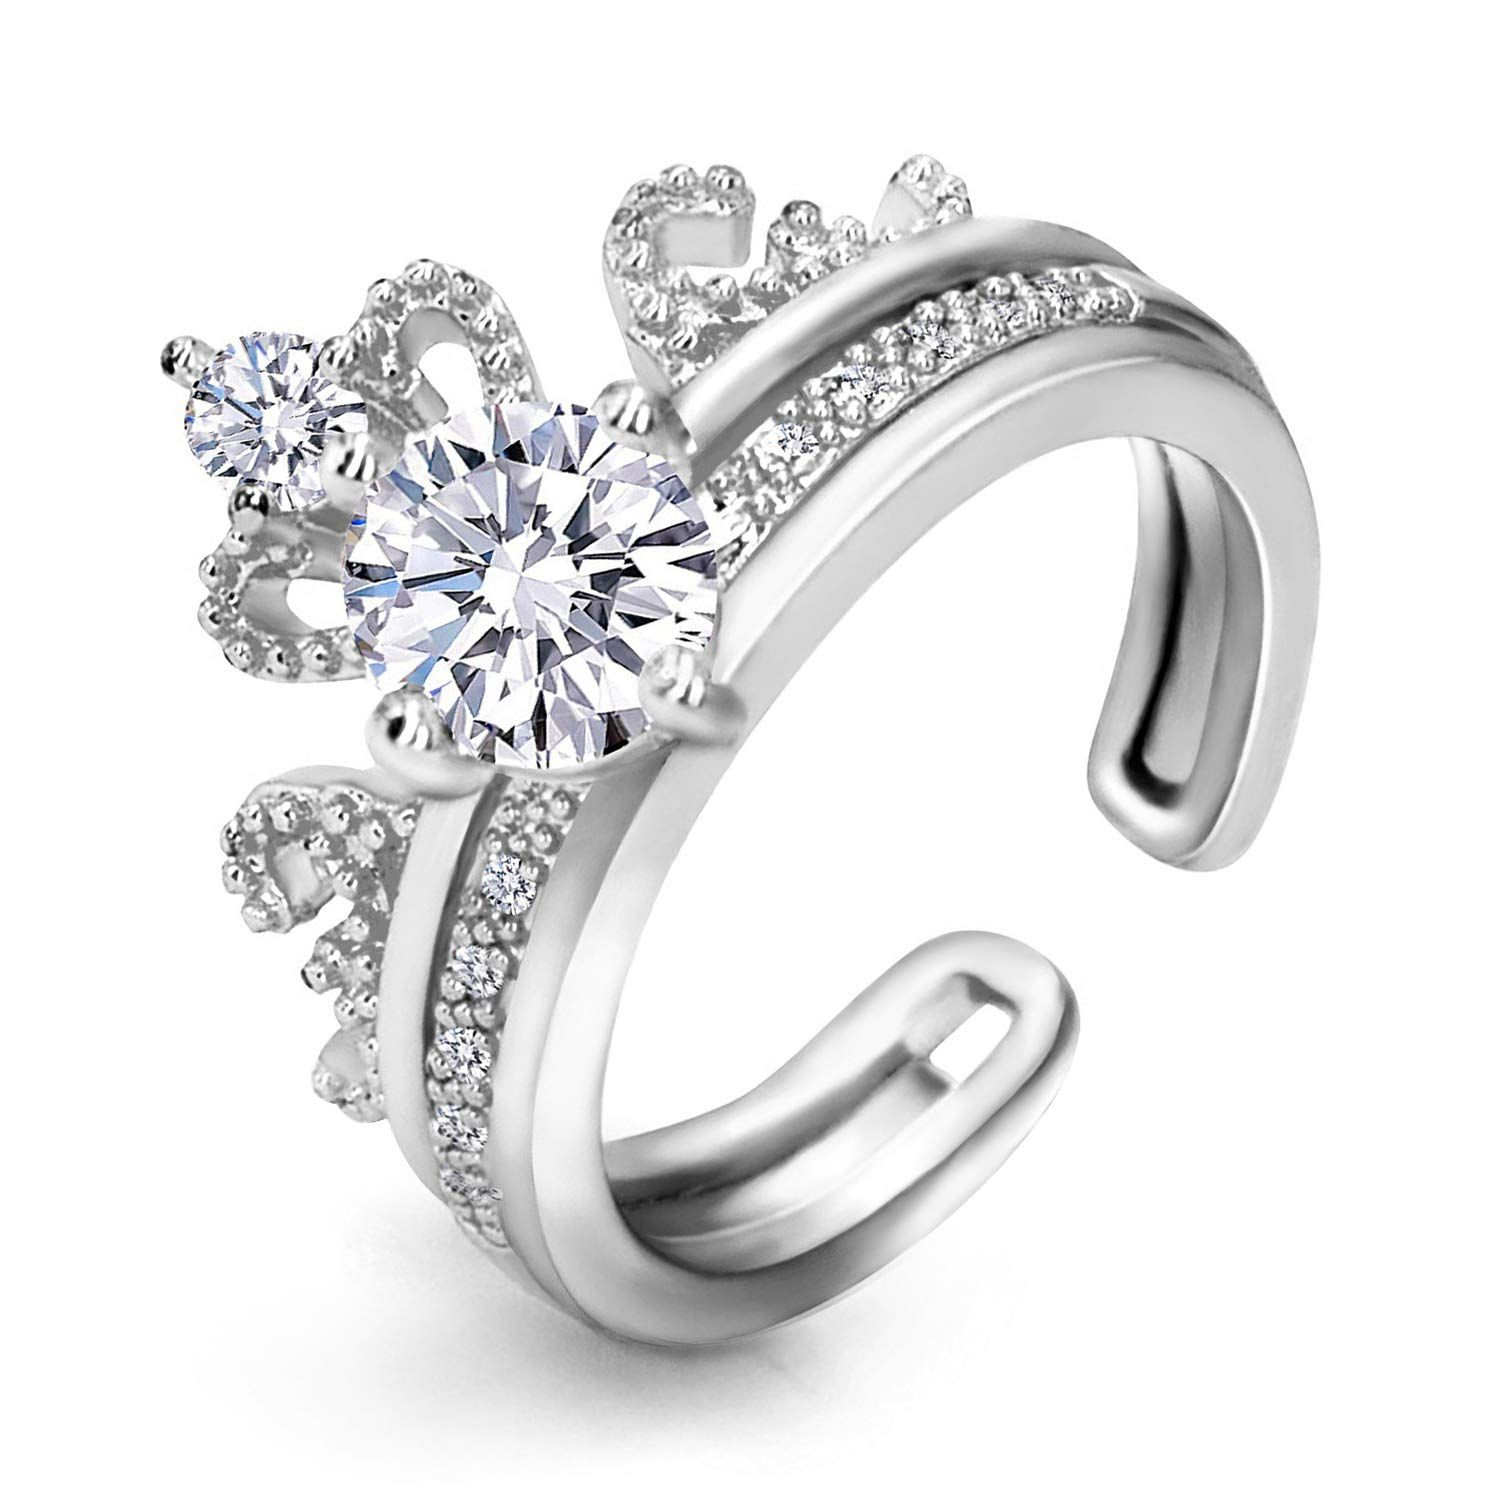 LicLiz Adjustable Crown Ring Set, Solitaire Engagement